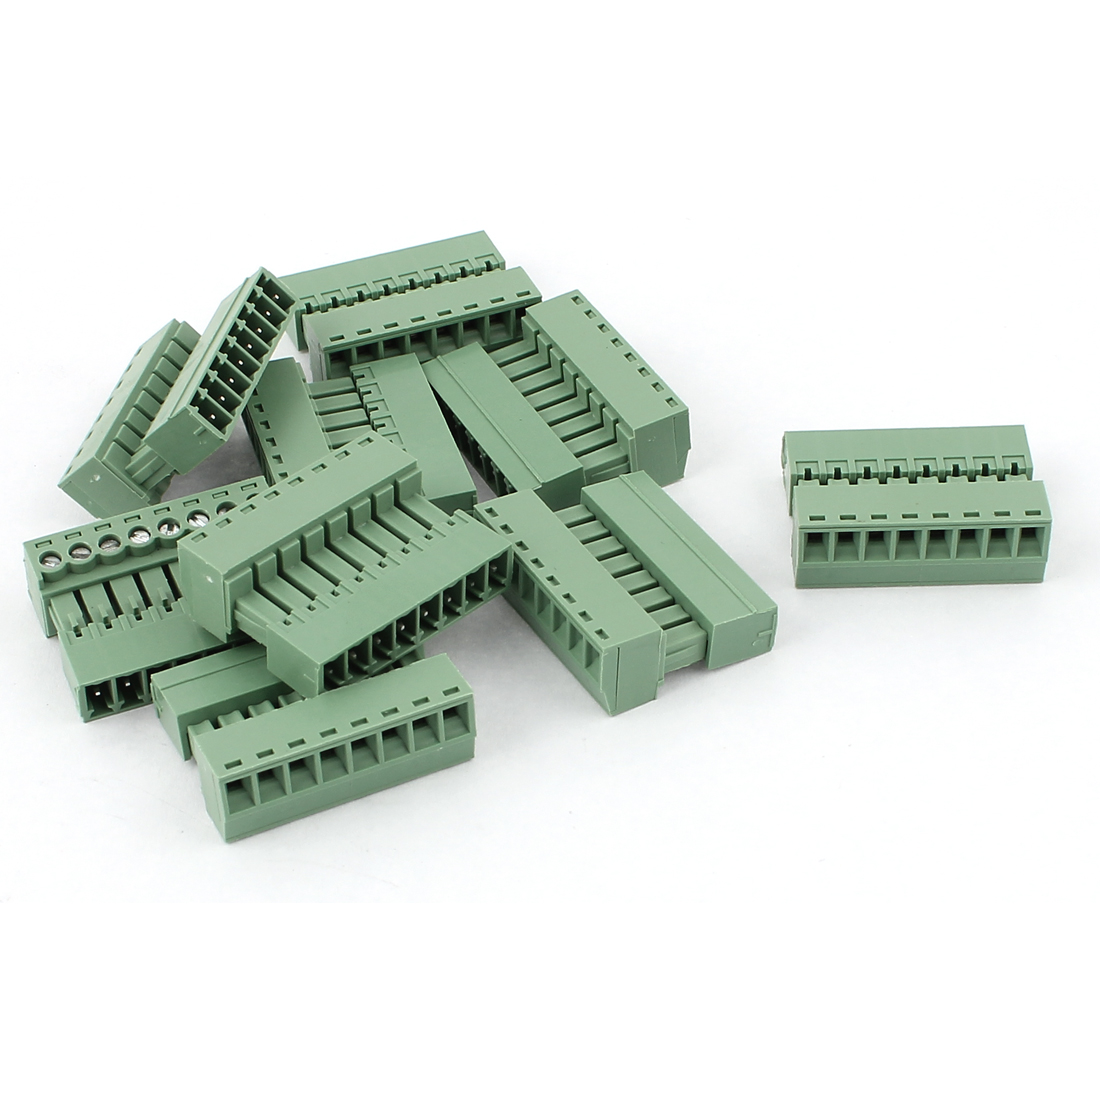 10 Pcs 250V 6A 8-Pin 3.81mm Spacing PCB Mount Terminal Block Connector